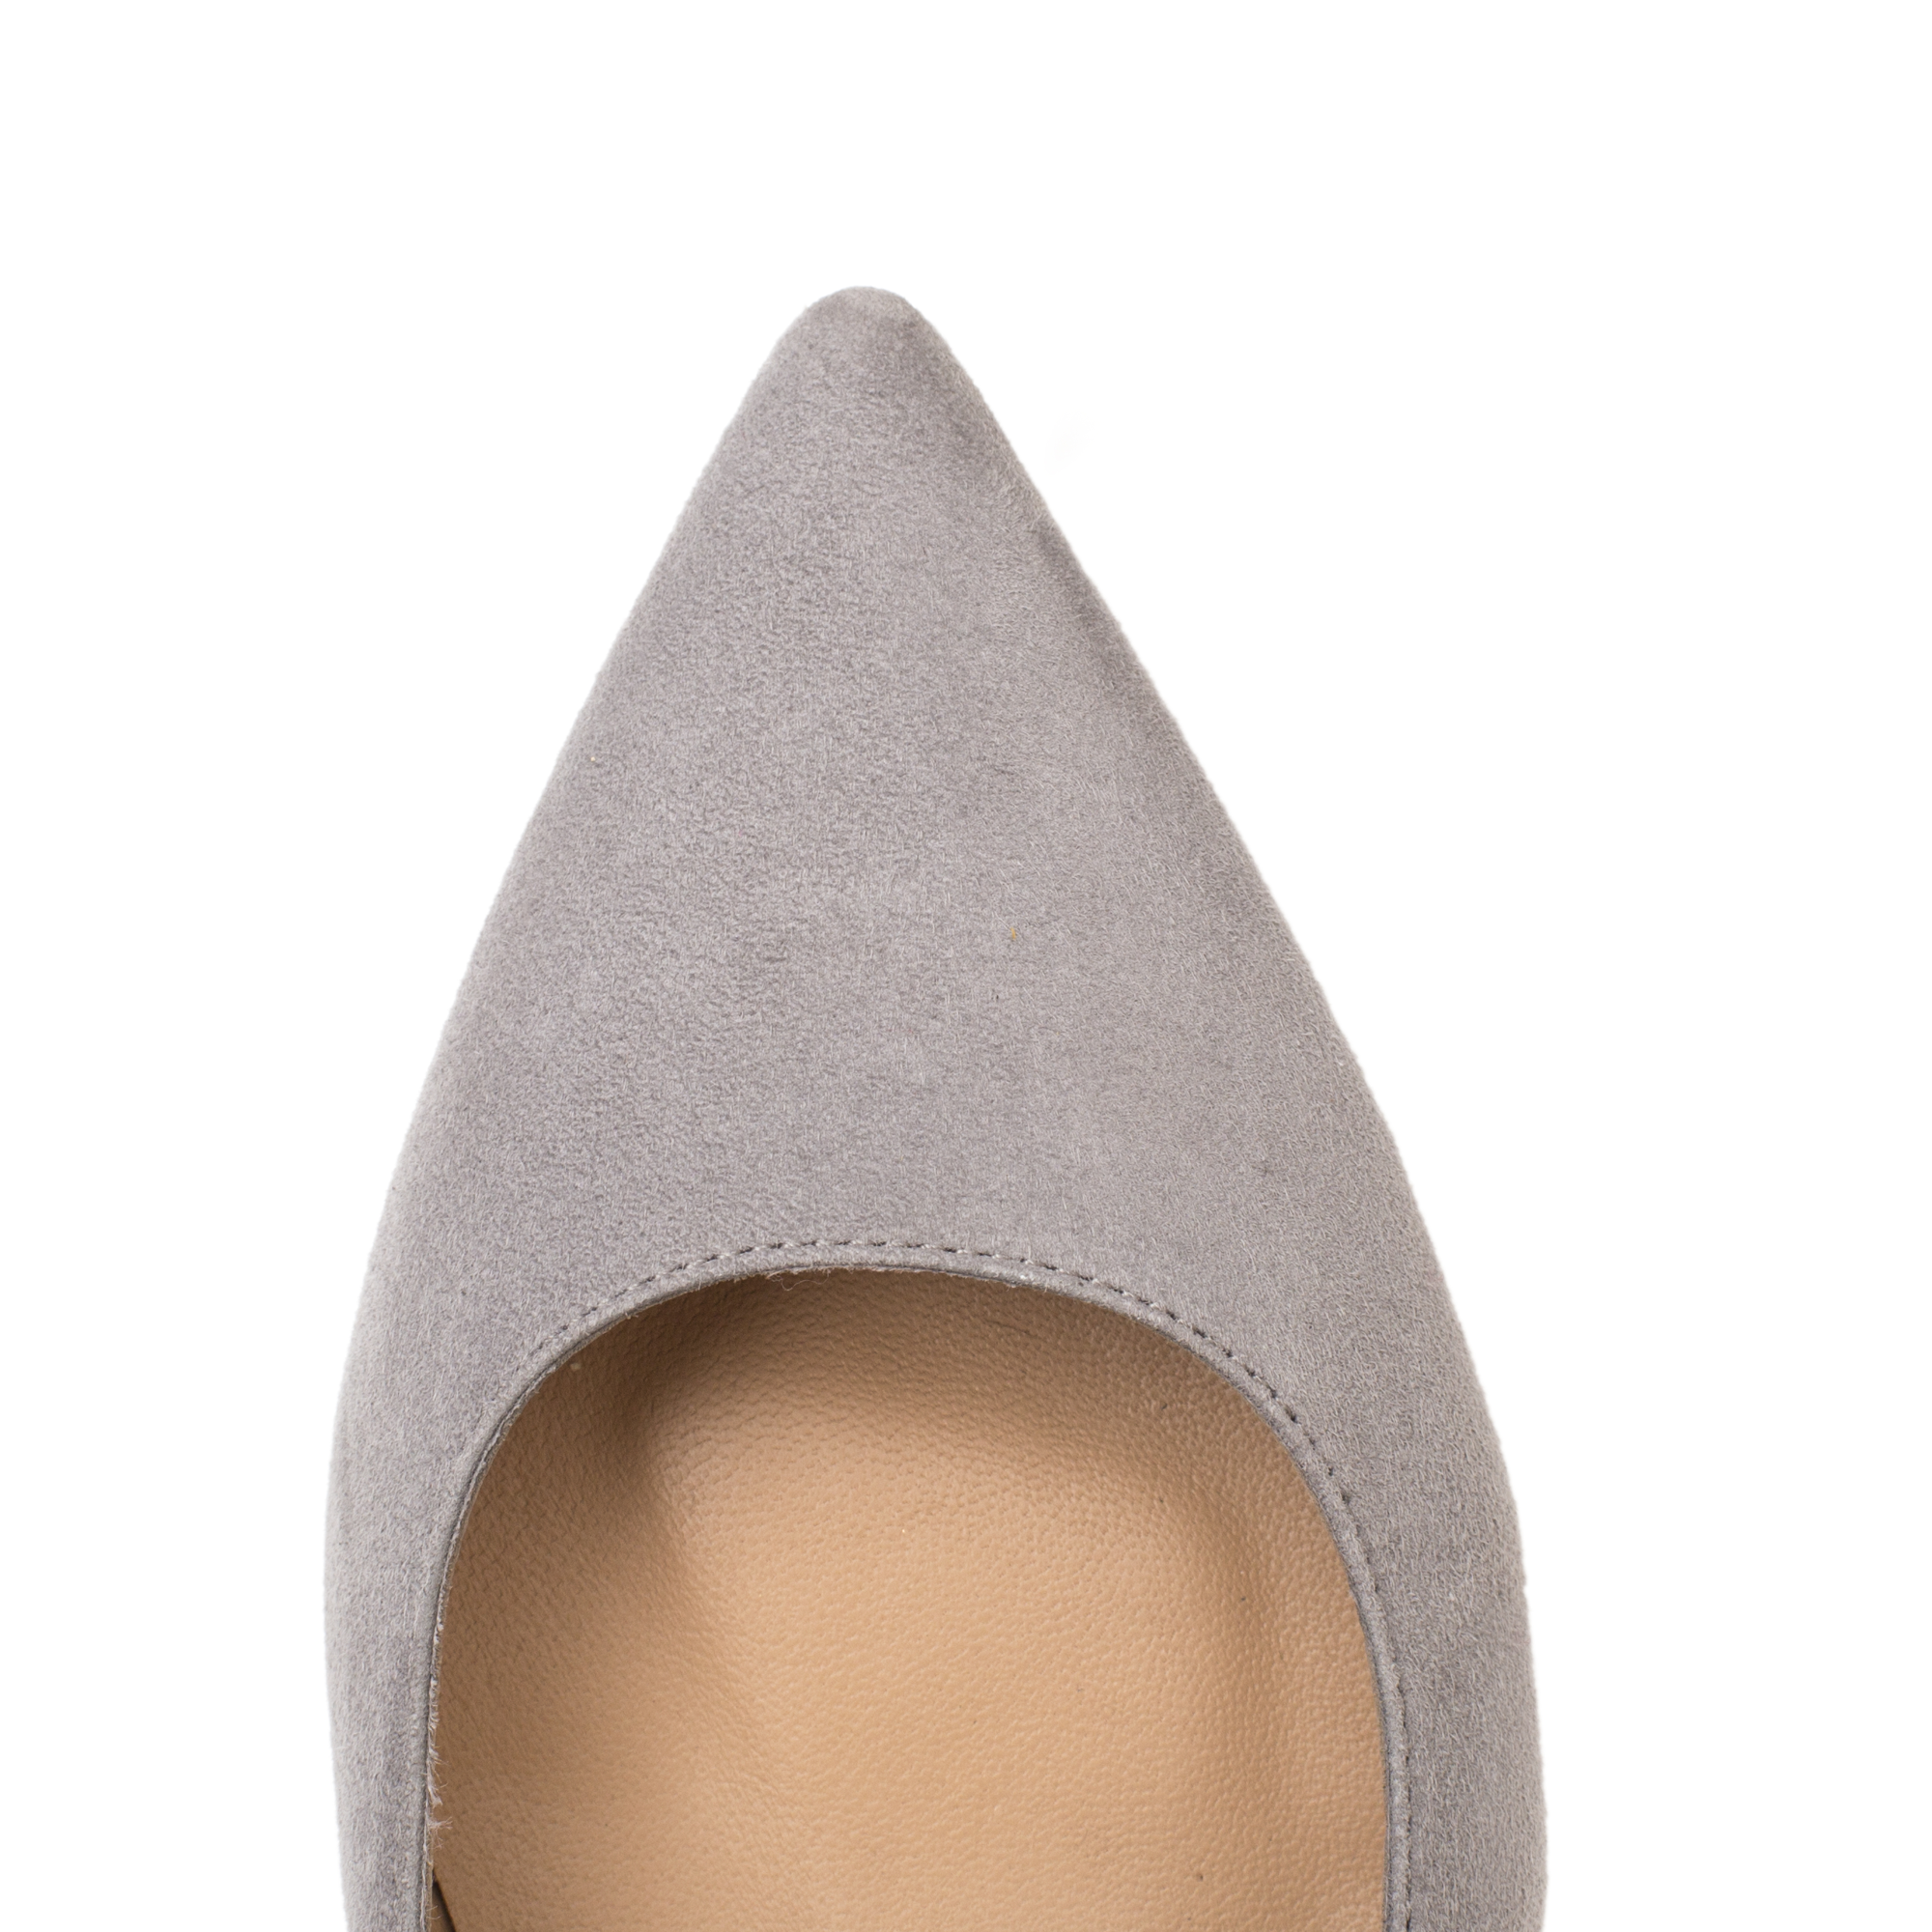 Low heel shoes for tall ladies in premium grey suede leather by SHUTICA